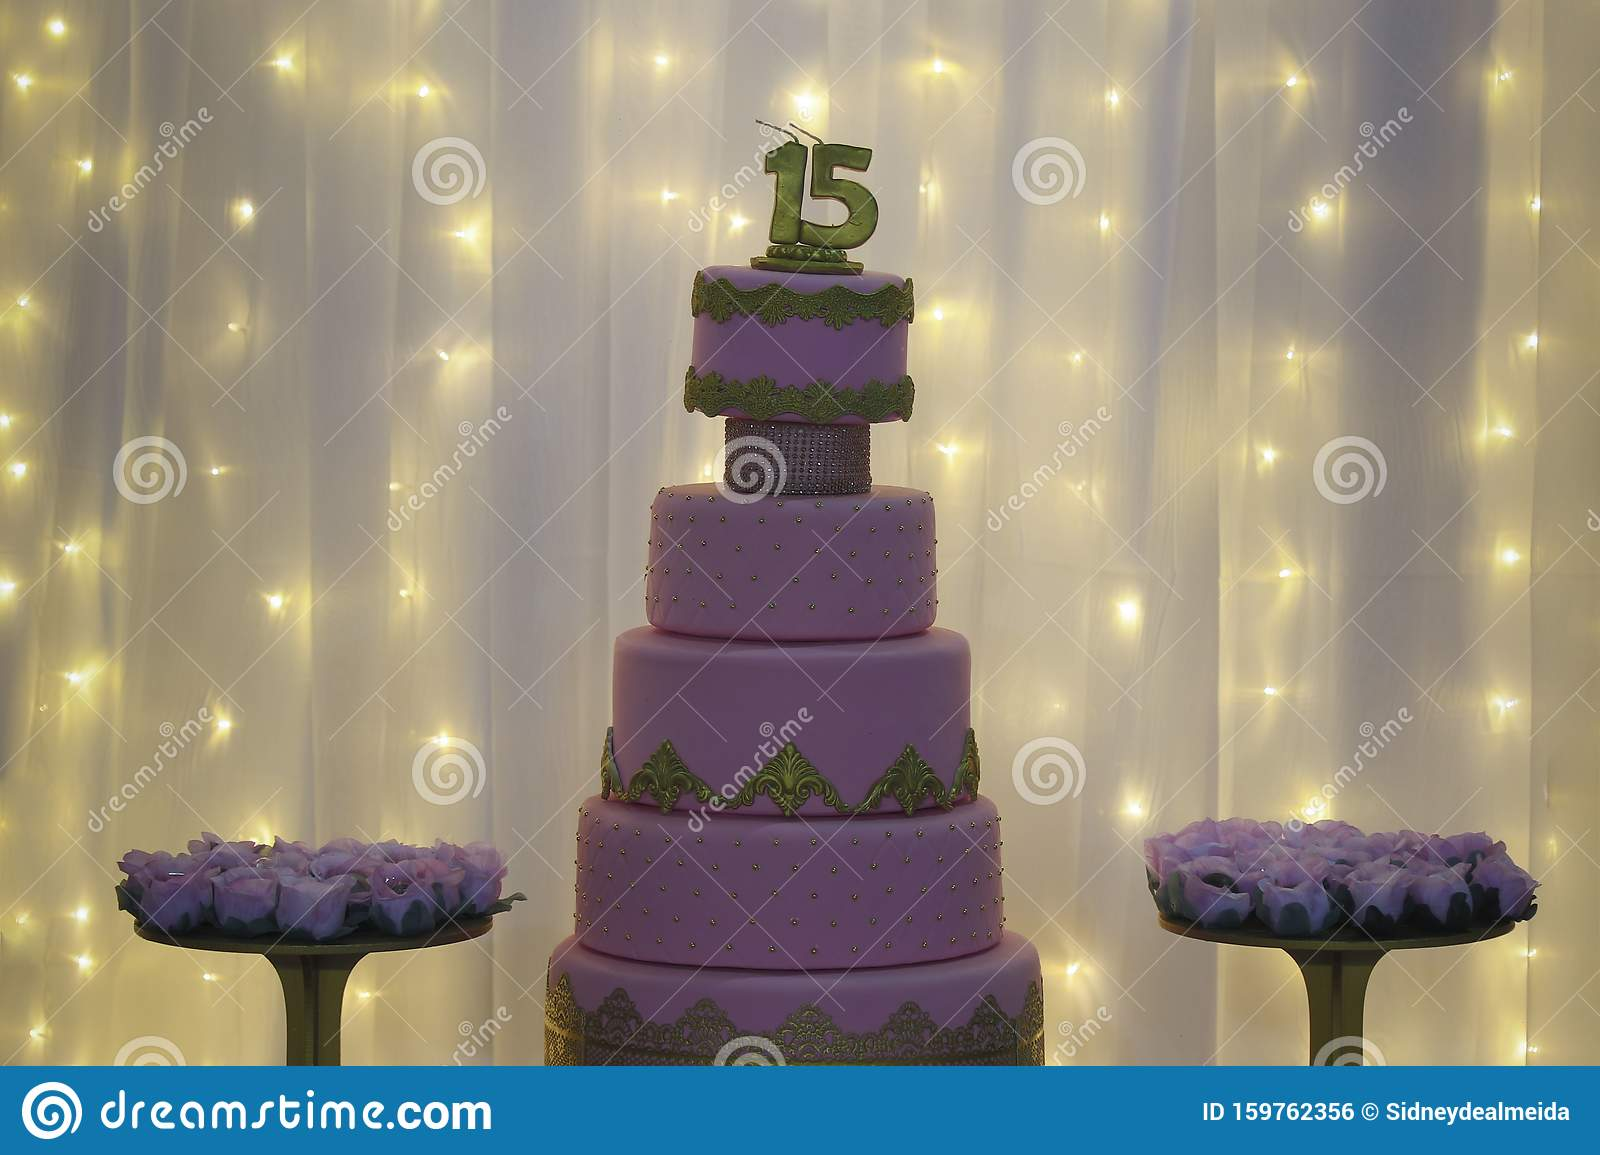 Superb Party Cake 15Th Birthday Cake Fifteen Years Stock Photo Image Funny Birthday Cards Online Inifofree Goldxyz